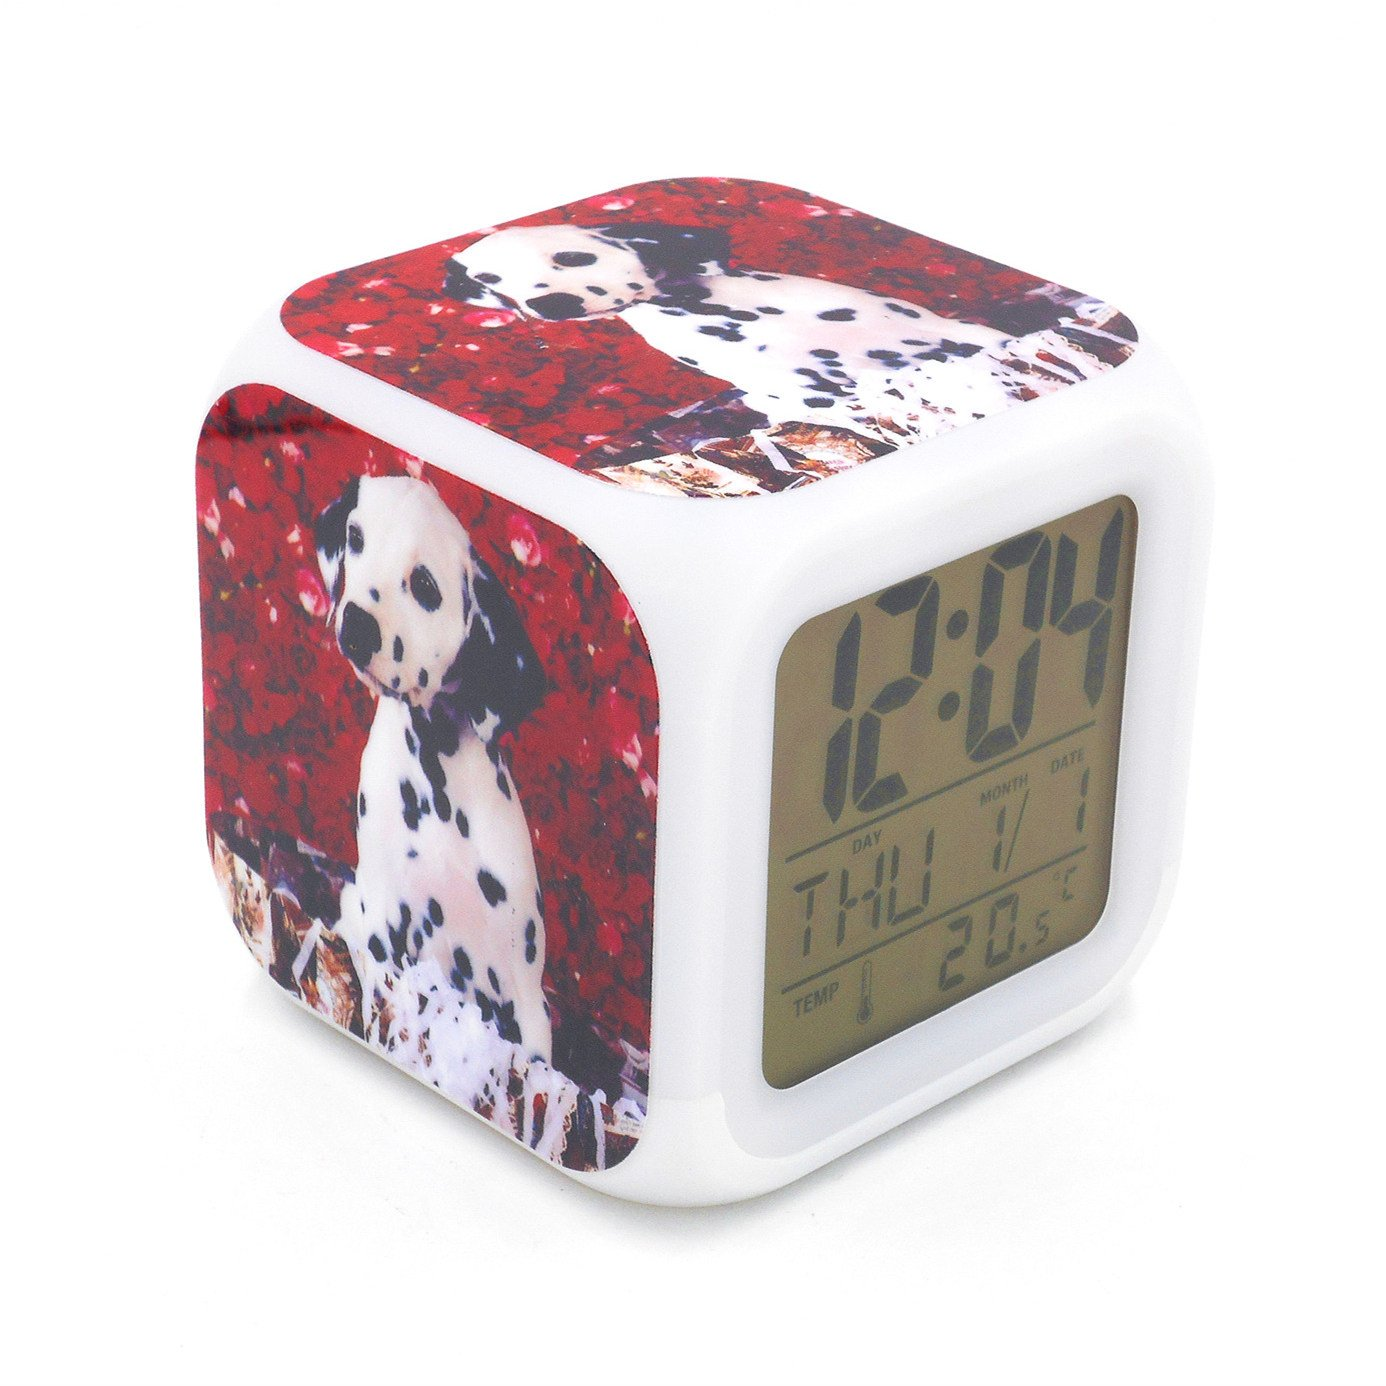 EGS New Dalmatian Dog Puppy Red Flower Digital Alarm Clock Desk Table Led Alarm Clock Creative Personalized Multifunctional Battery Alarm Clock Special Toy Gift for Unisex Kids Adults